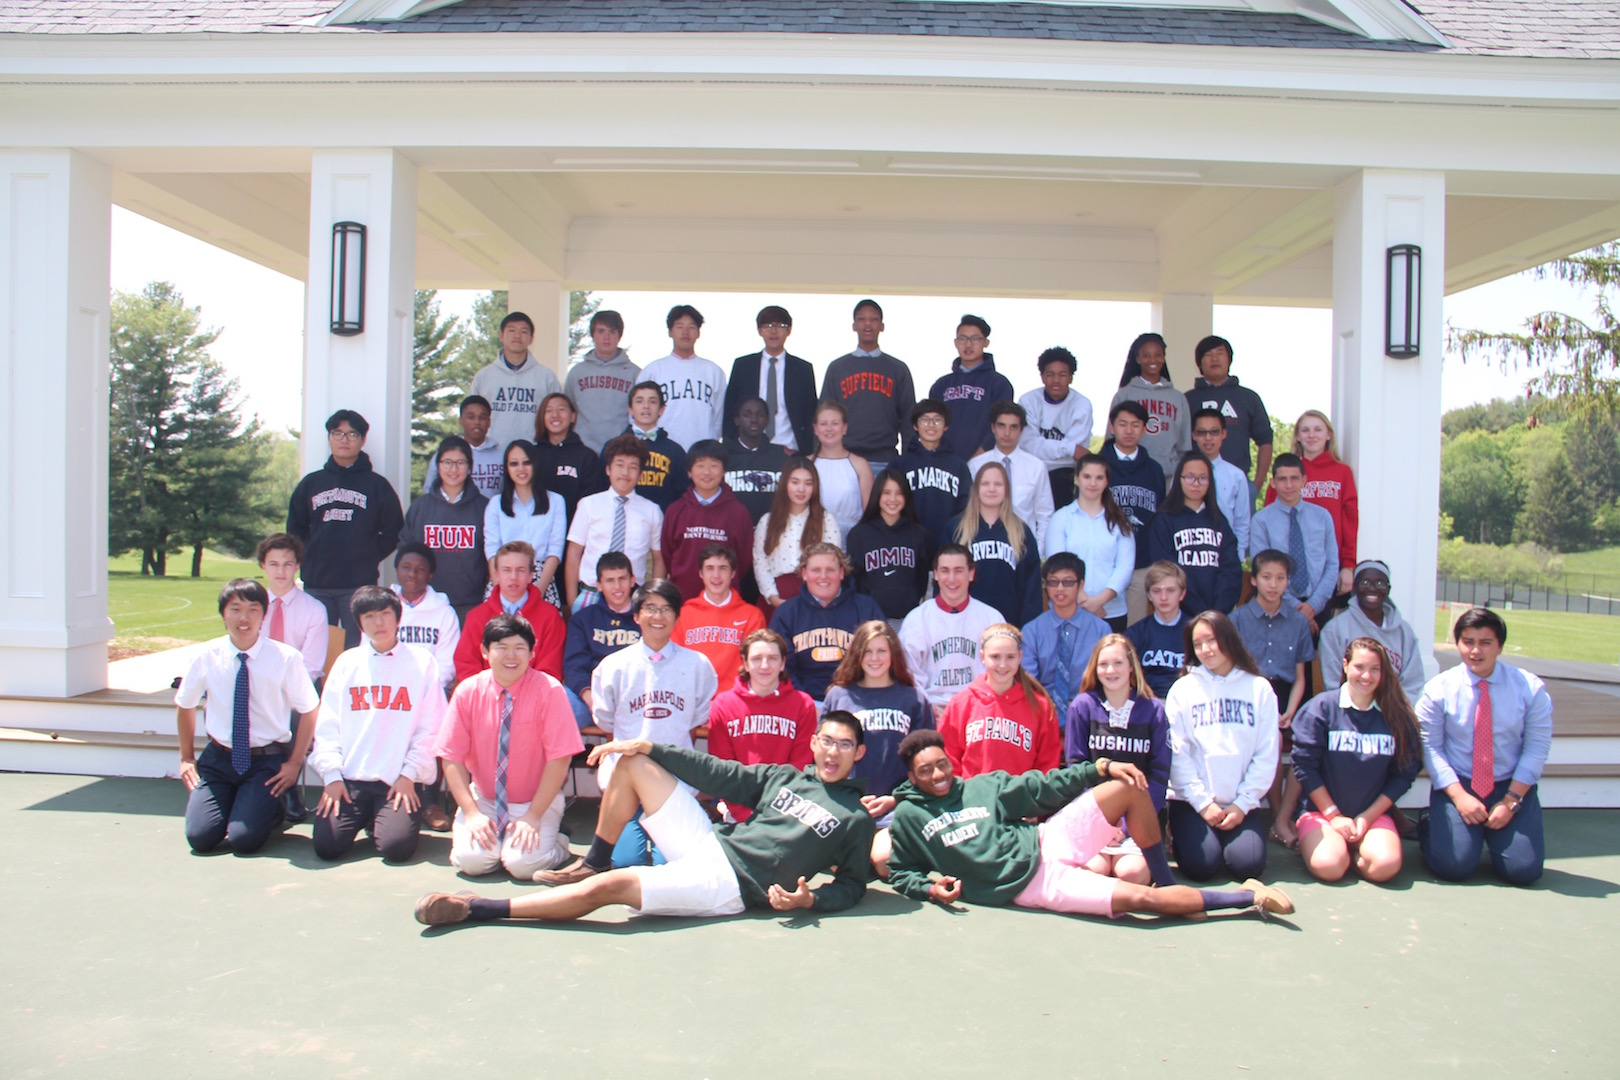 The annual ninth-grade sweatshirt photo for the graduates from The Class of 2016.